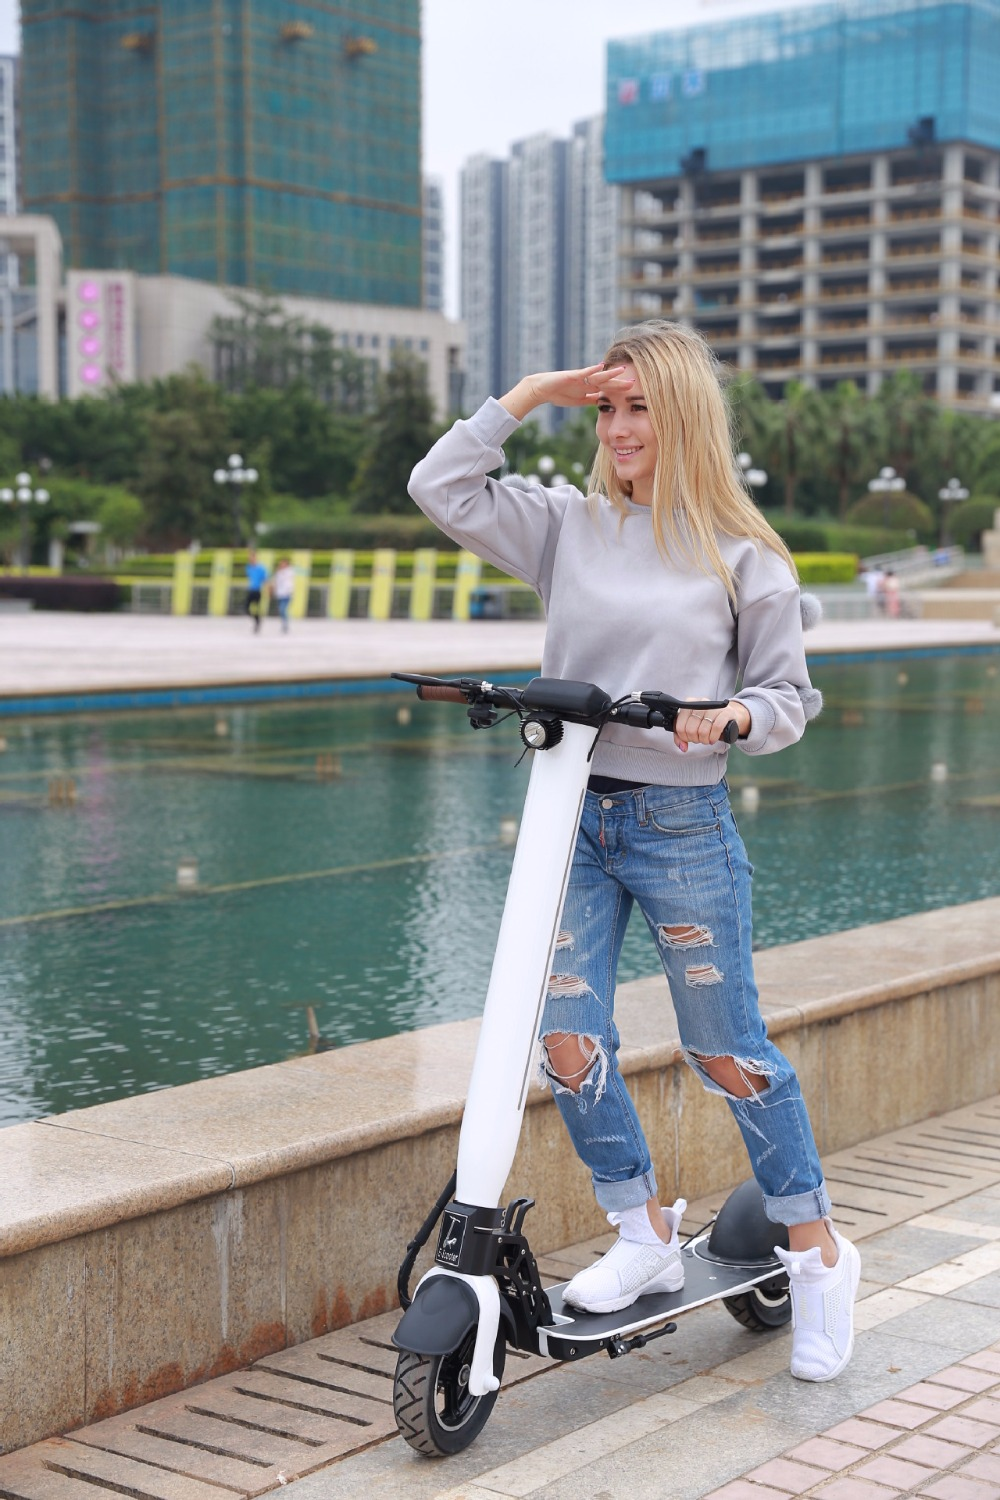 Daibot Adult Kick Scooter Two Wheel Electric Scooters 10 Inch Power Motor 500W 48V With Buletooth Folding Electric Scooter